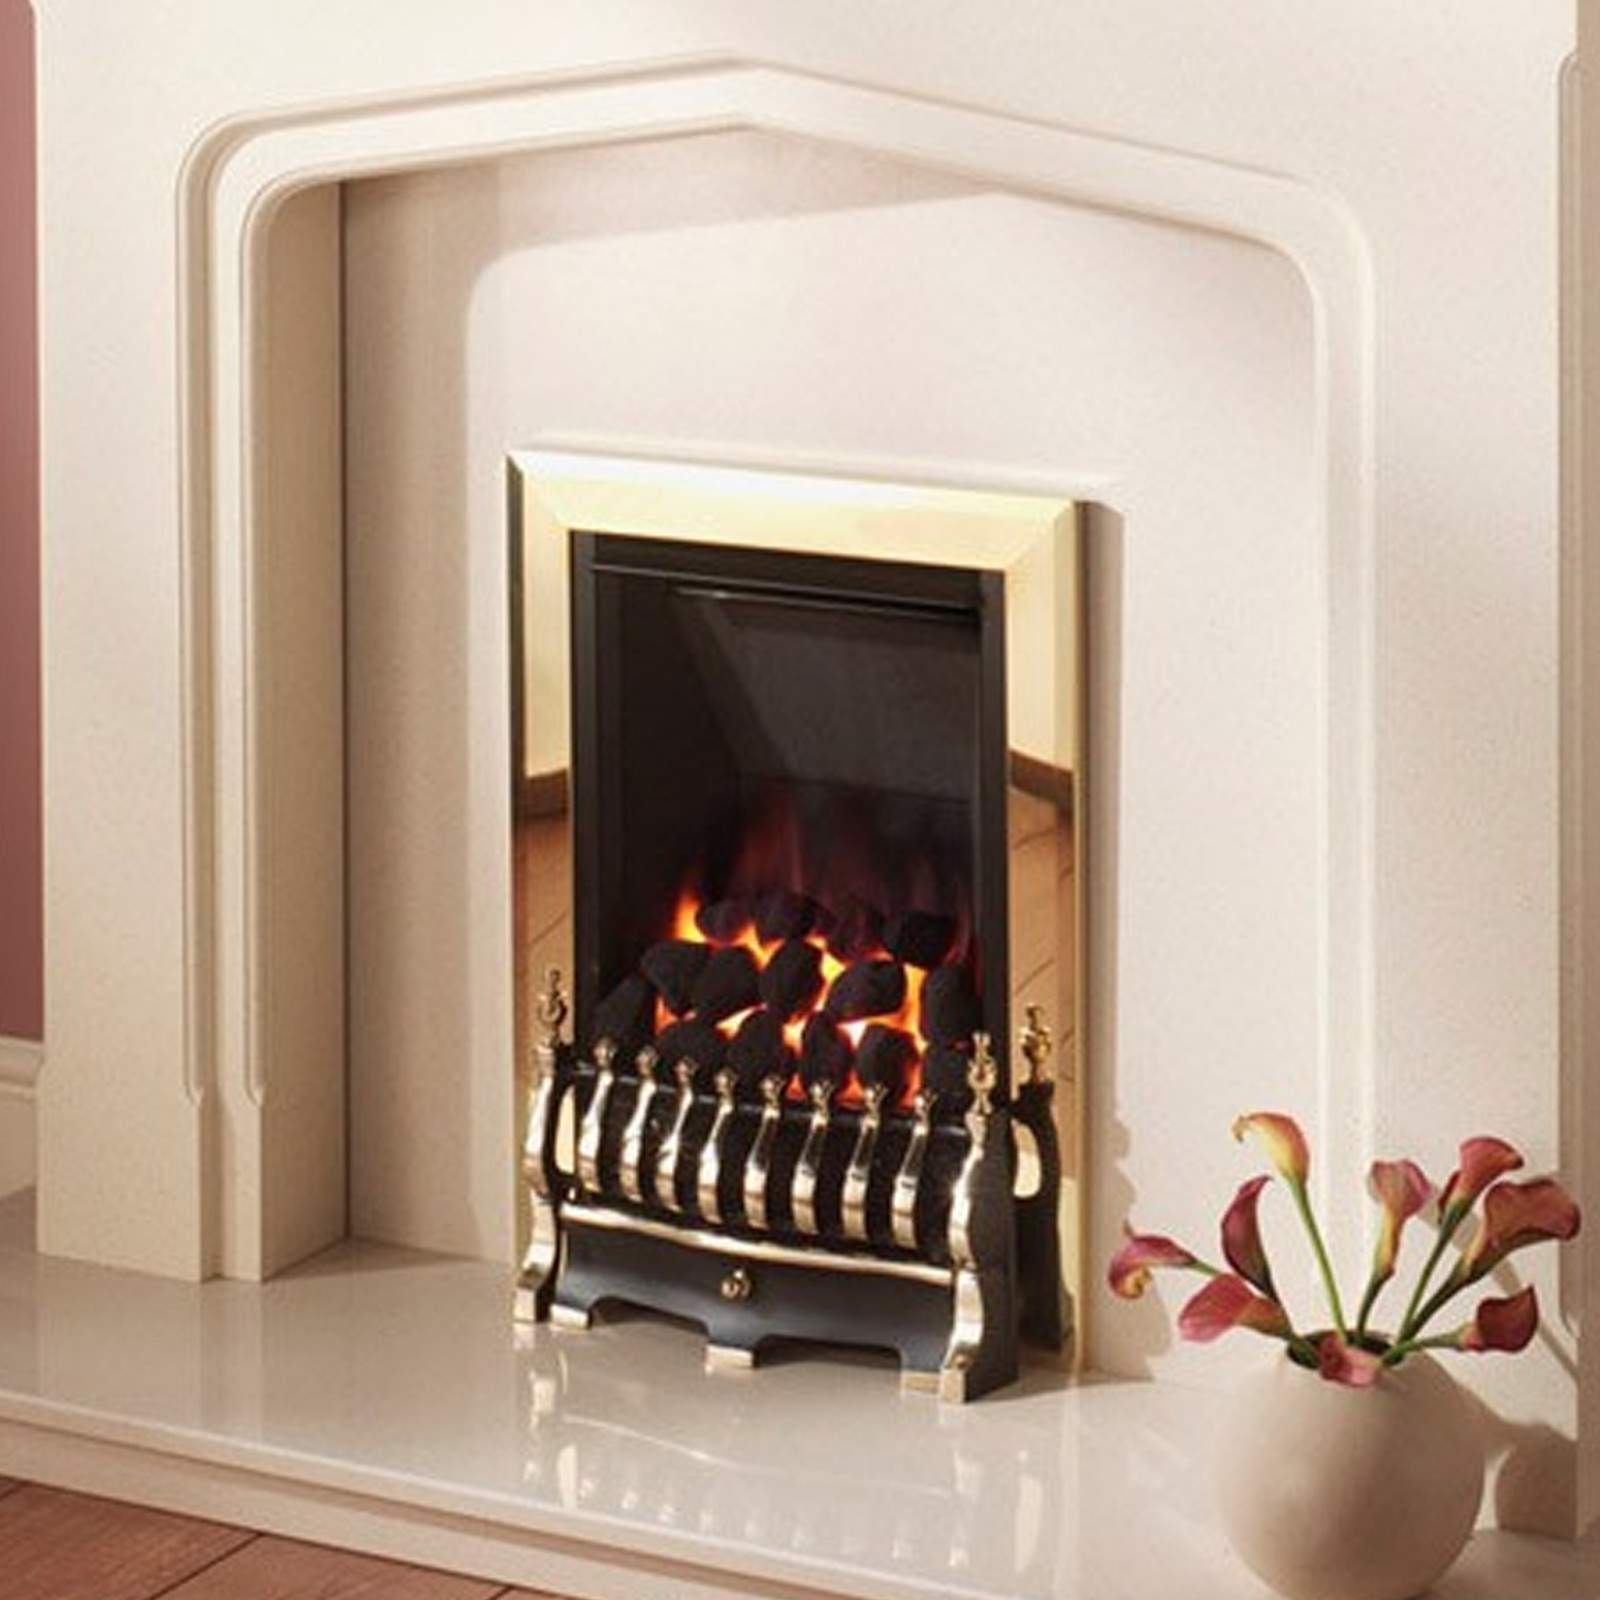 traditional fire crystal fires diamond slimline gas fire cheapest online prices. Black Bedroom Furniture Sets. Home Design Ideas